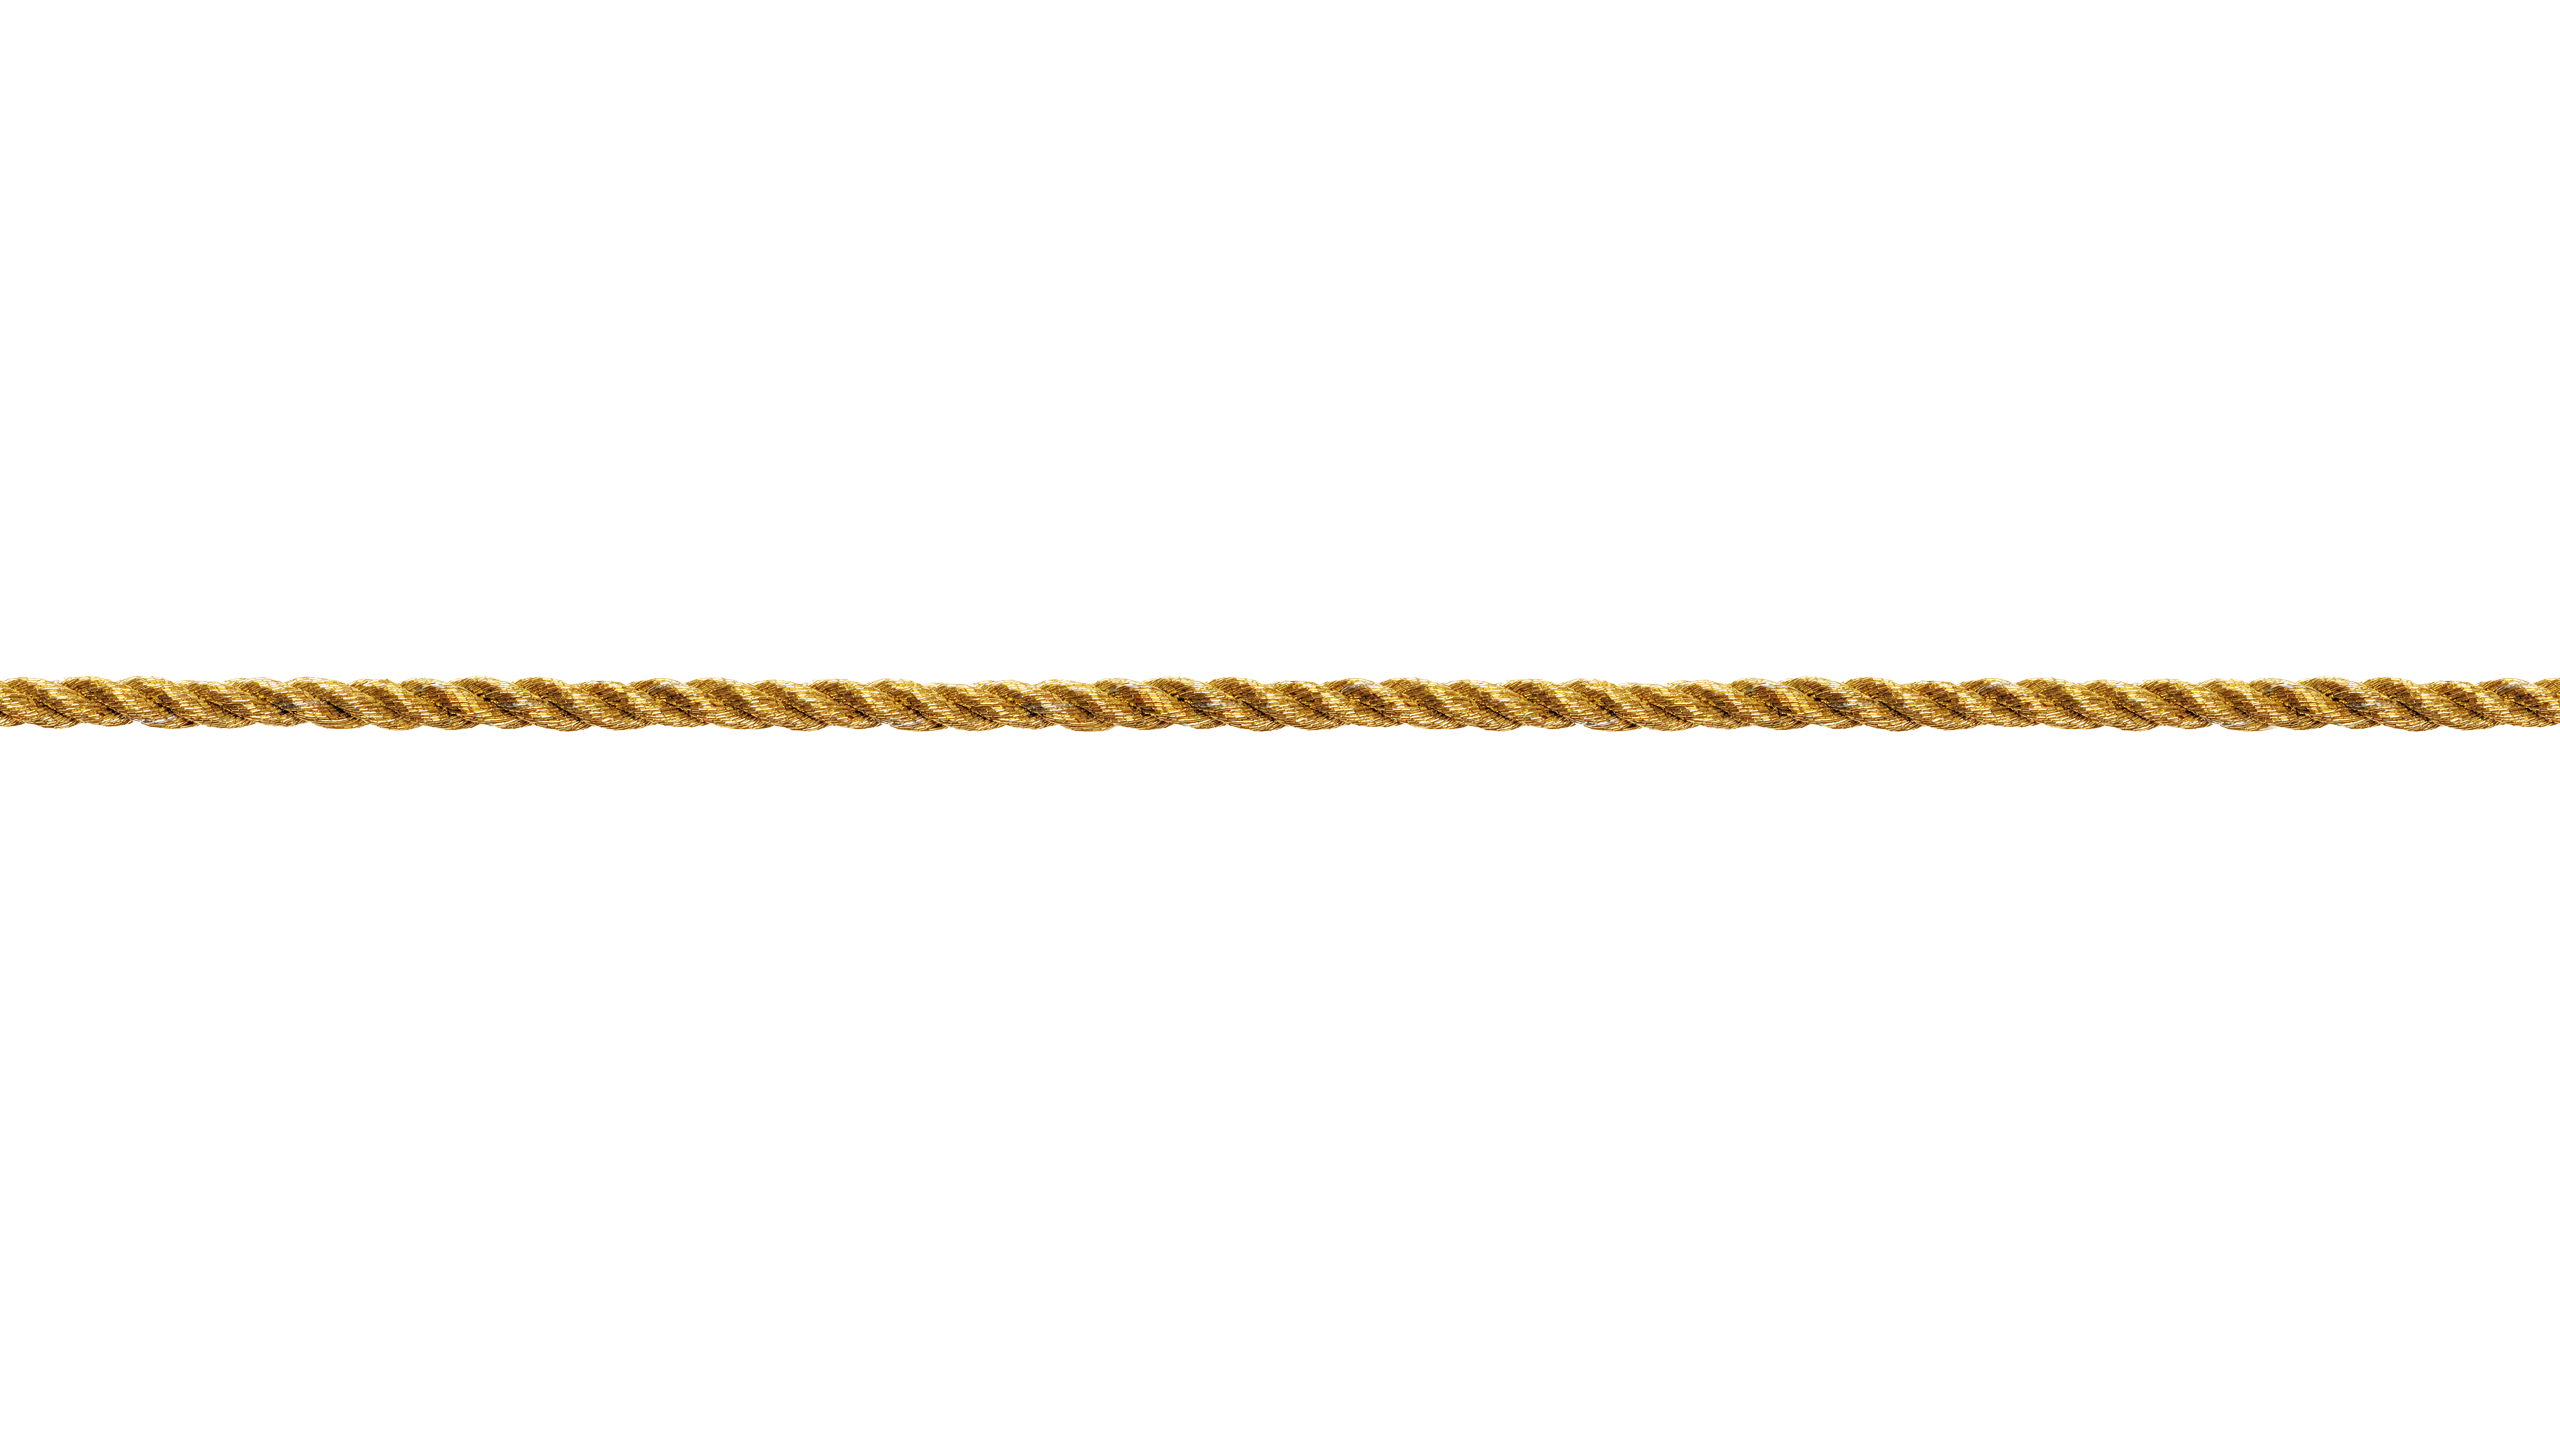 Rope clipart Clipart (6156) — Free Rope